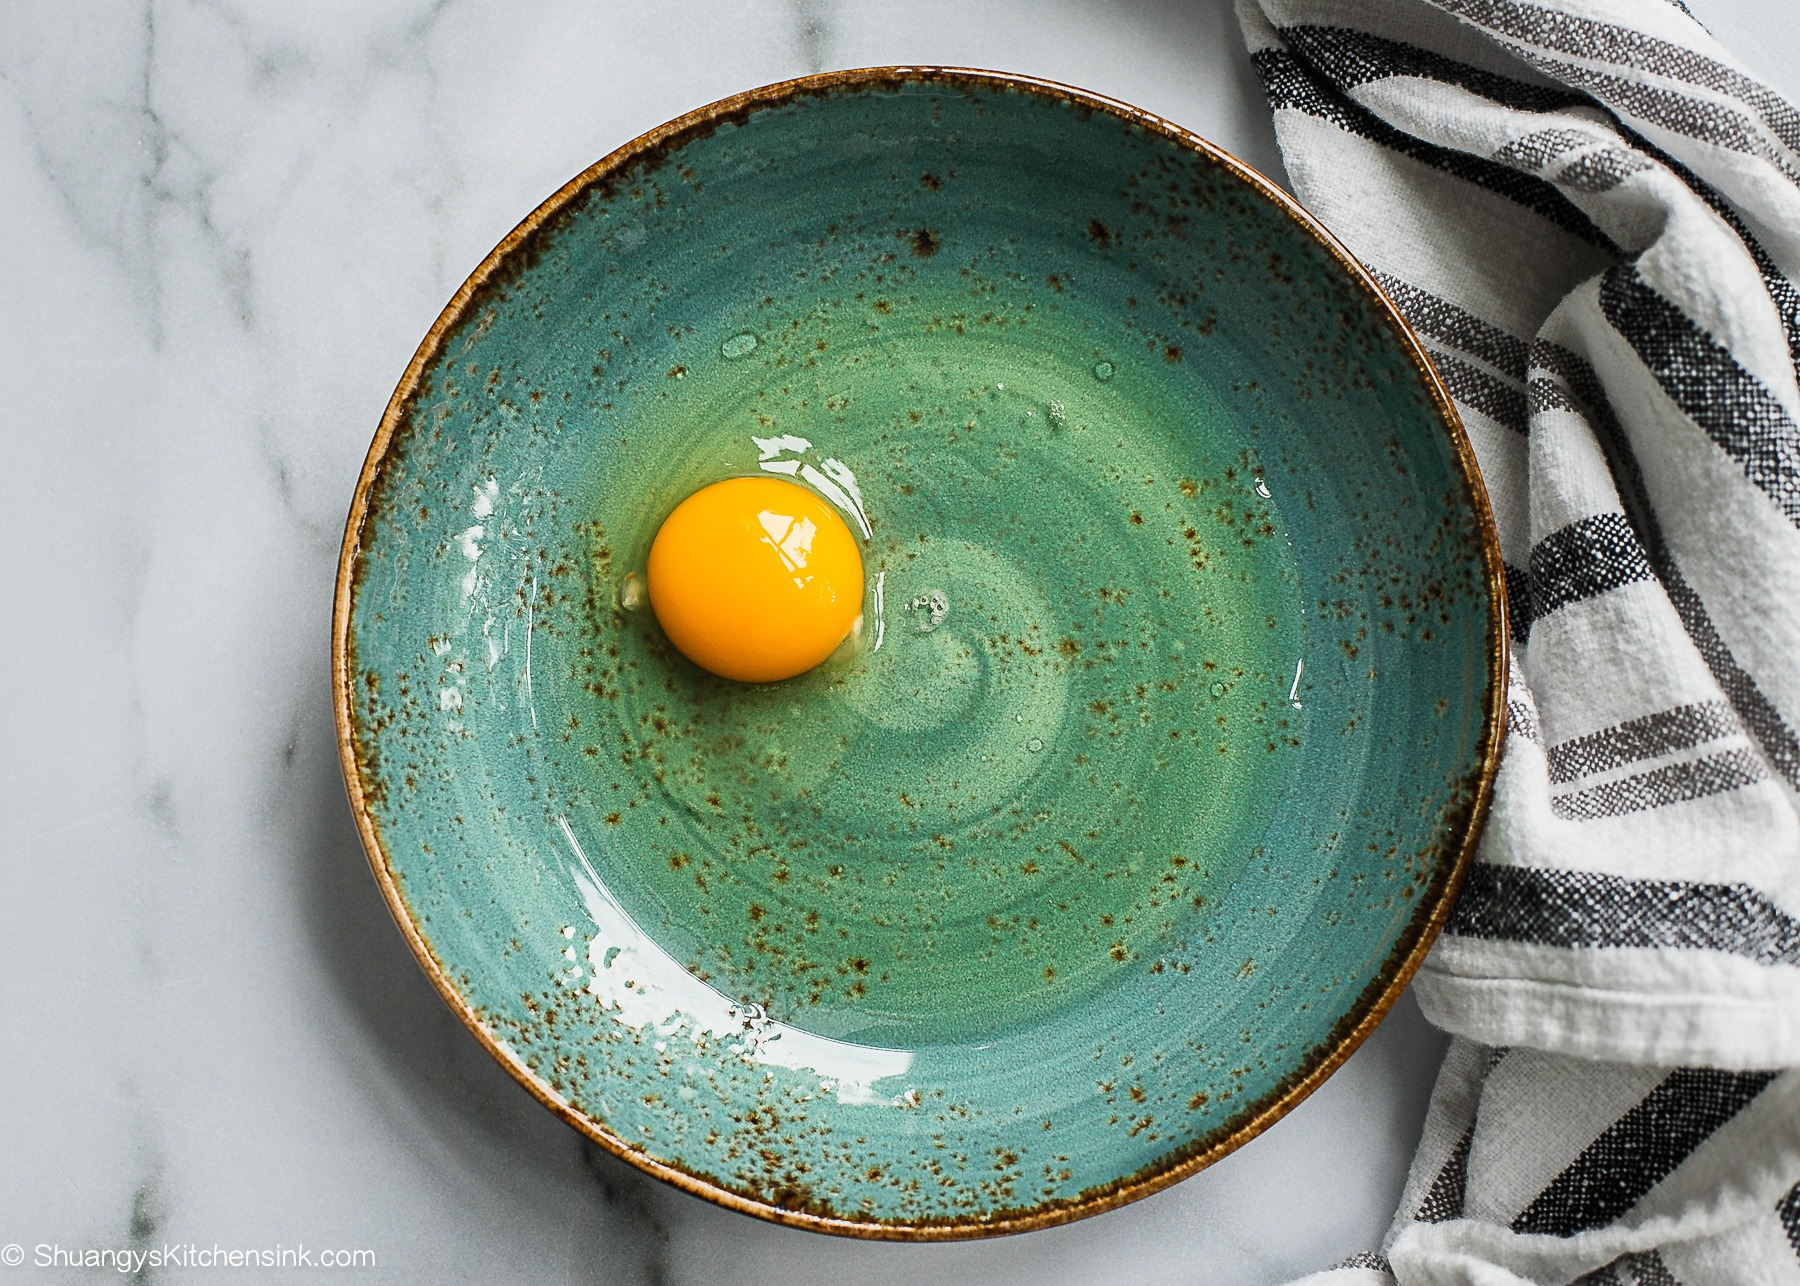 A bowl of egg and olive oil